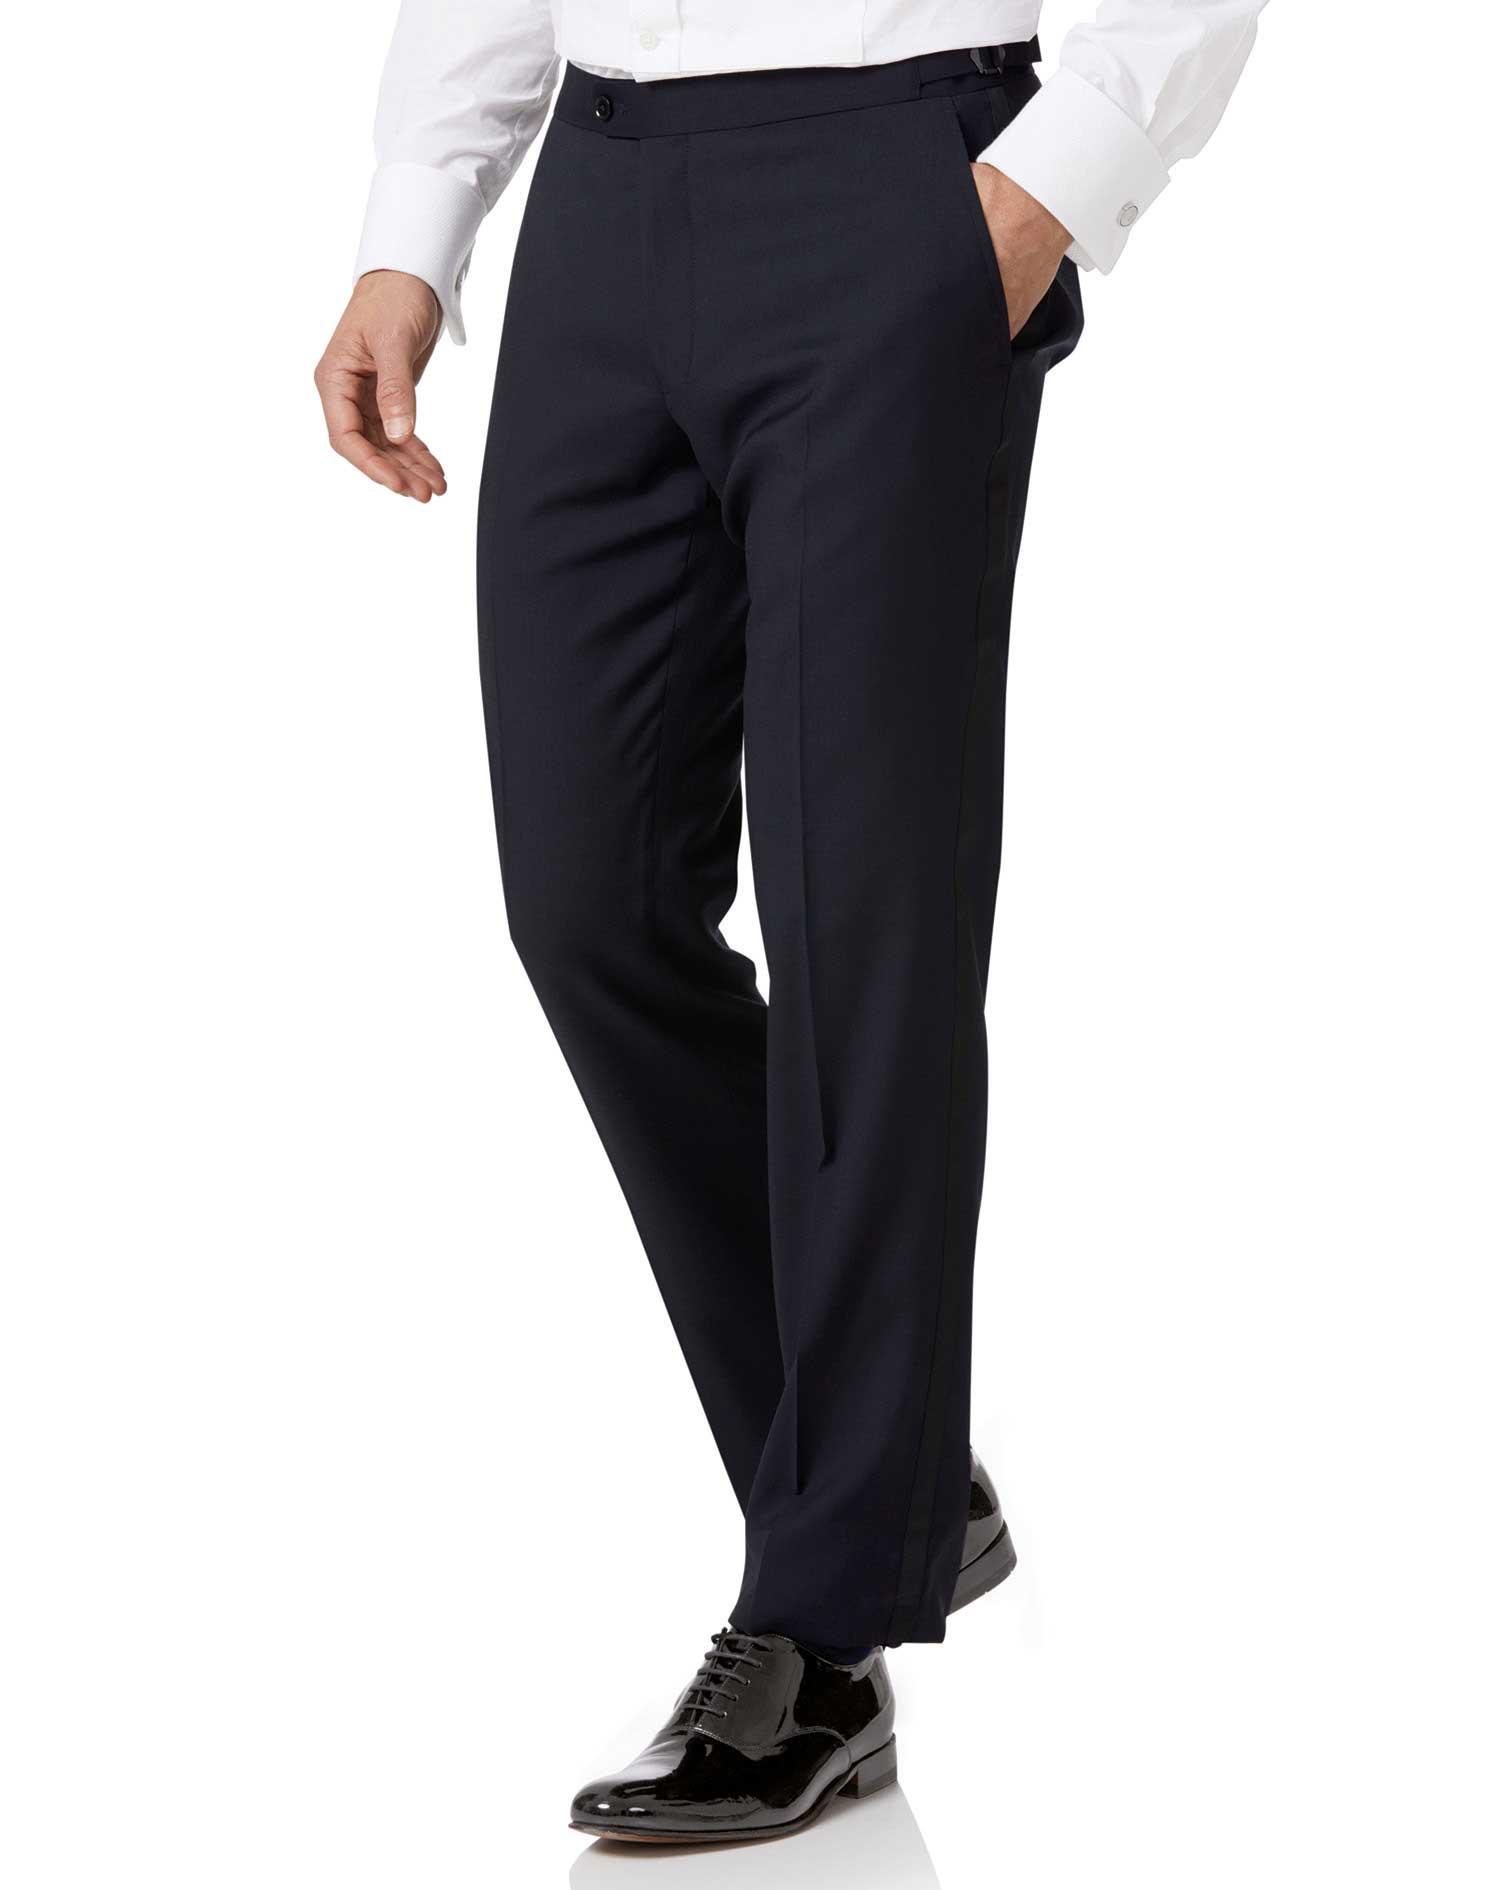 New Vintage Tuxedos, Tailcoats, Morning Suits, Dinner Jackets Midnight Blue Slim Fit Tuxedo Trousers Size W38 L32 by Charles Tyrwhitt £100.00 AT vintagedancer.com